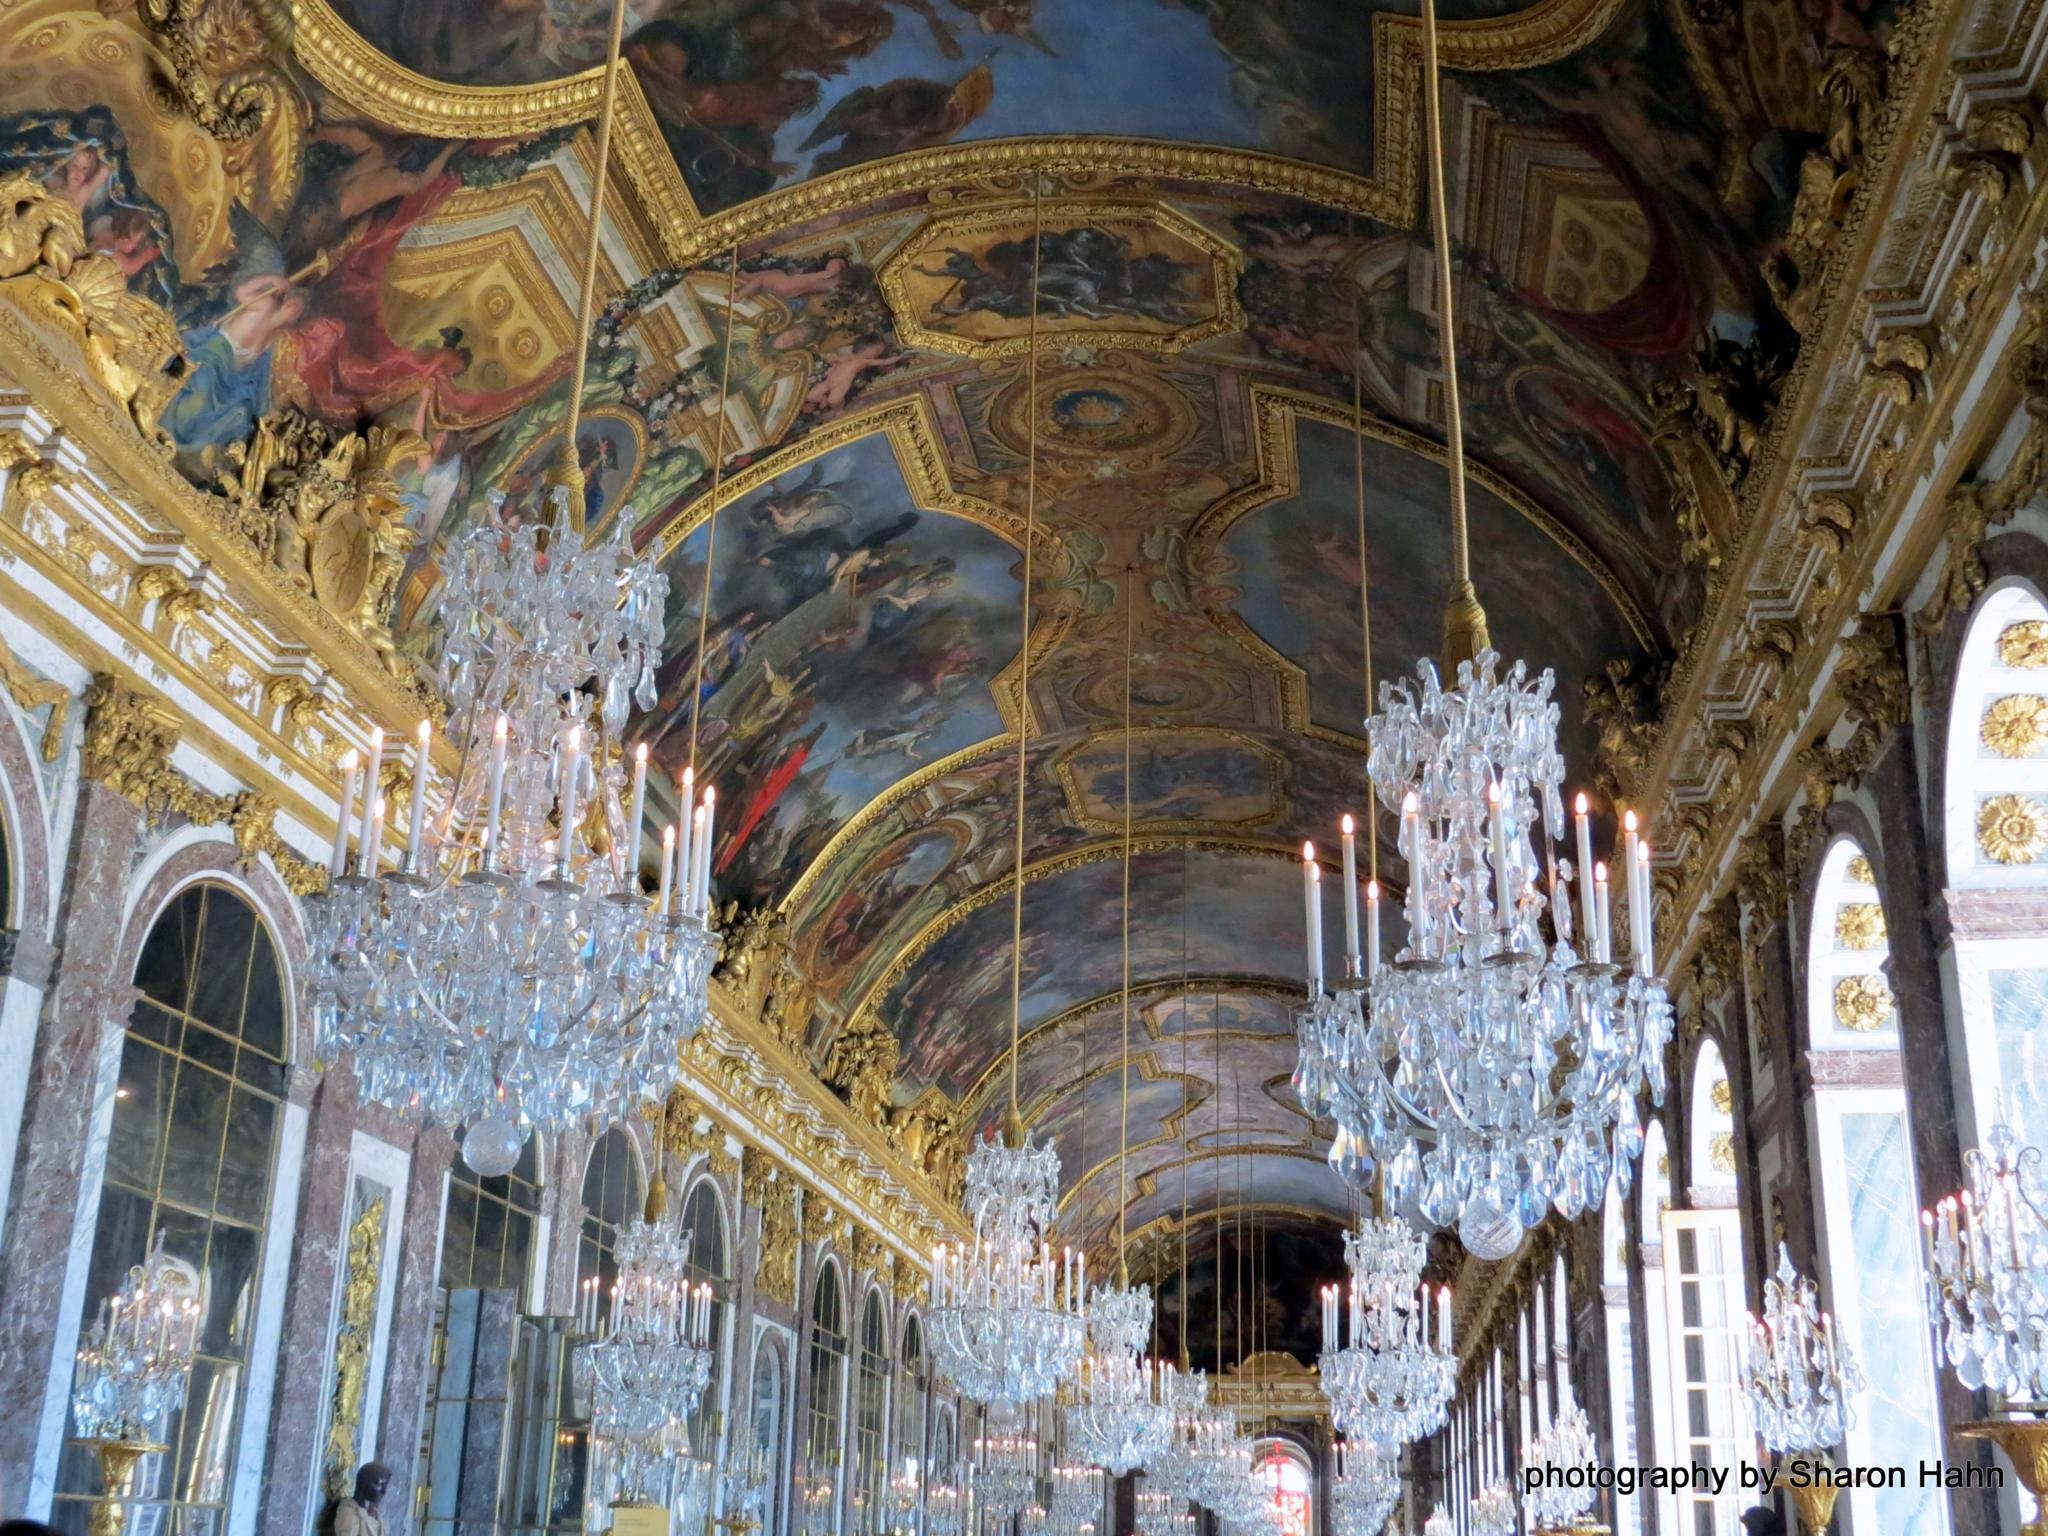 Hall of Mirrors by #LuvToTravelWorld